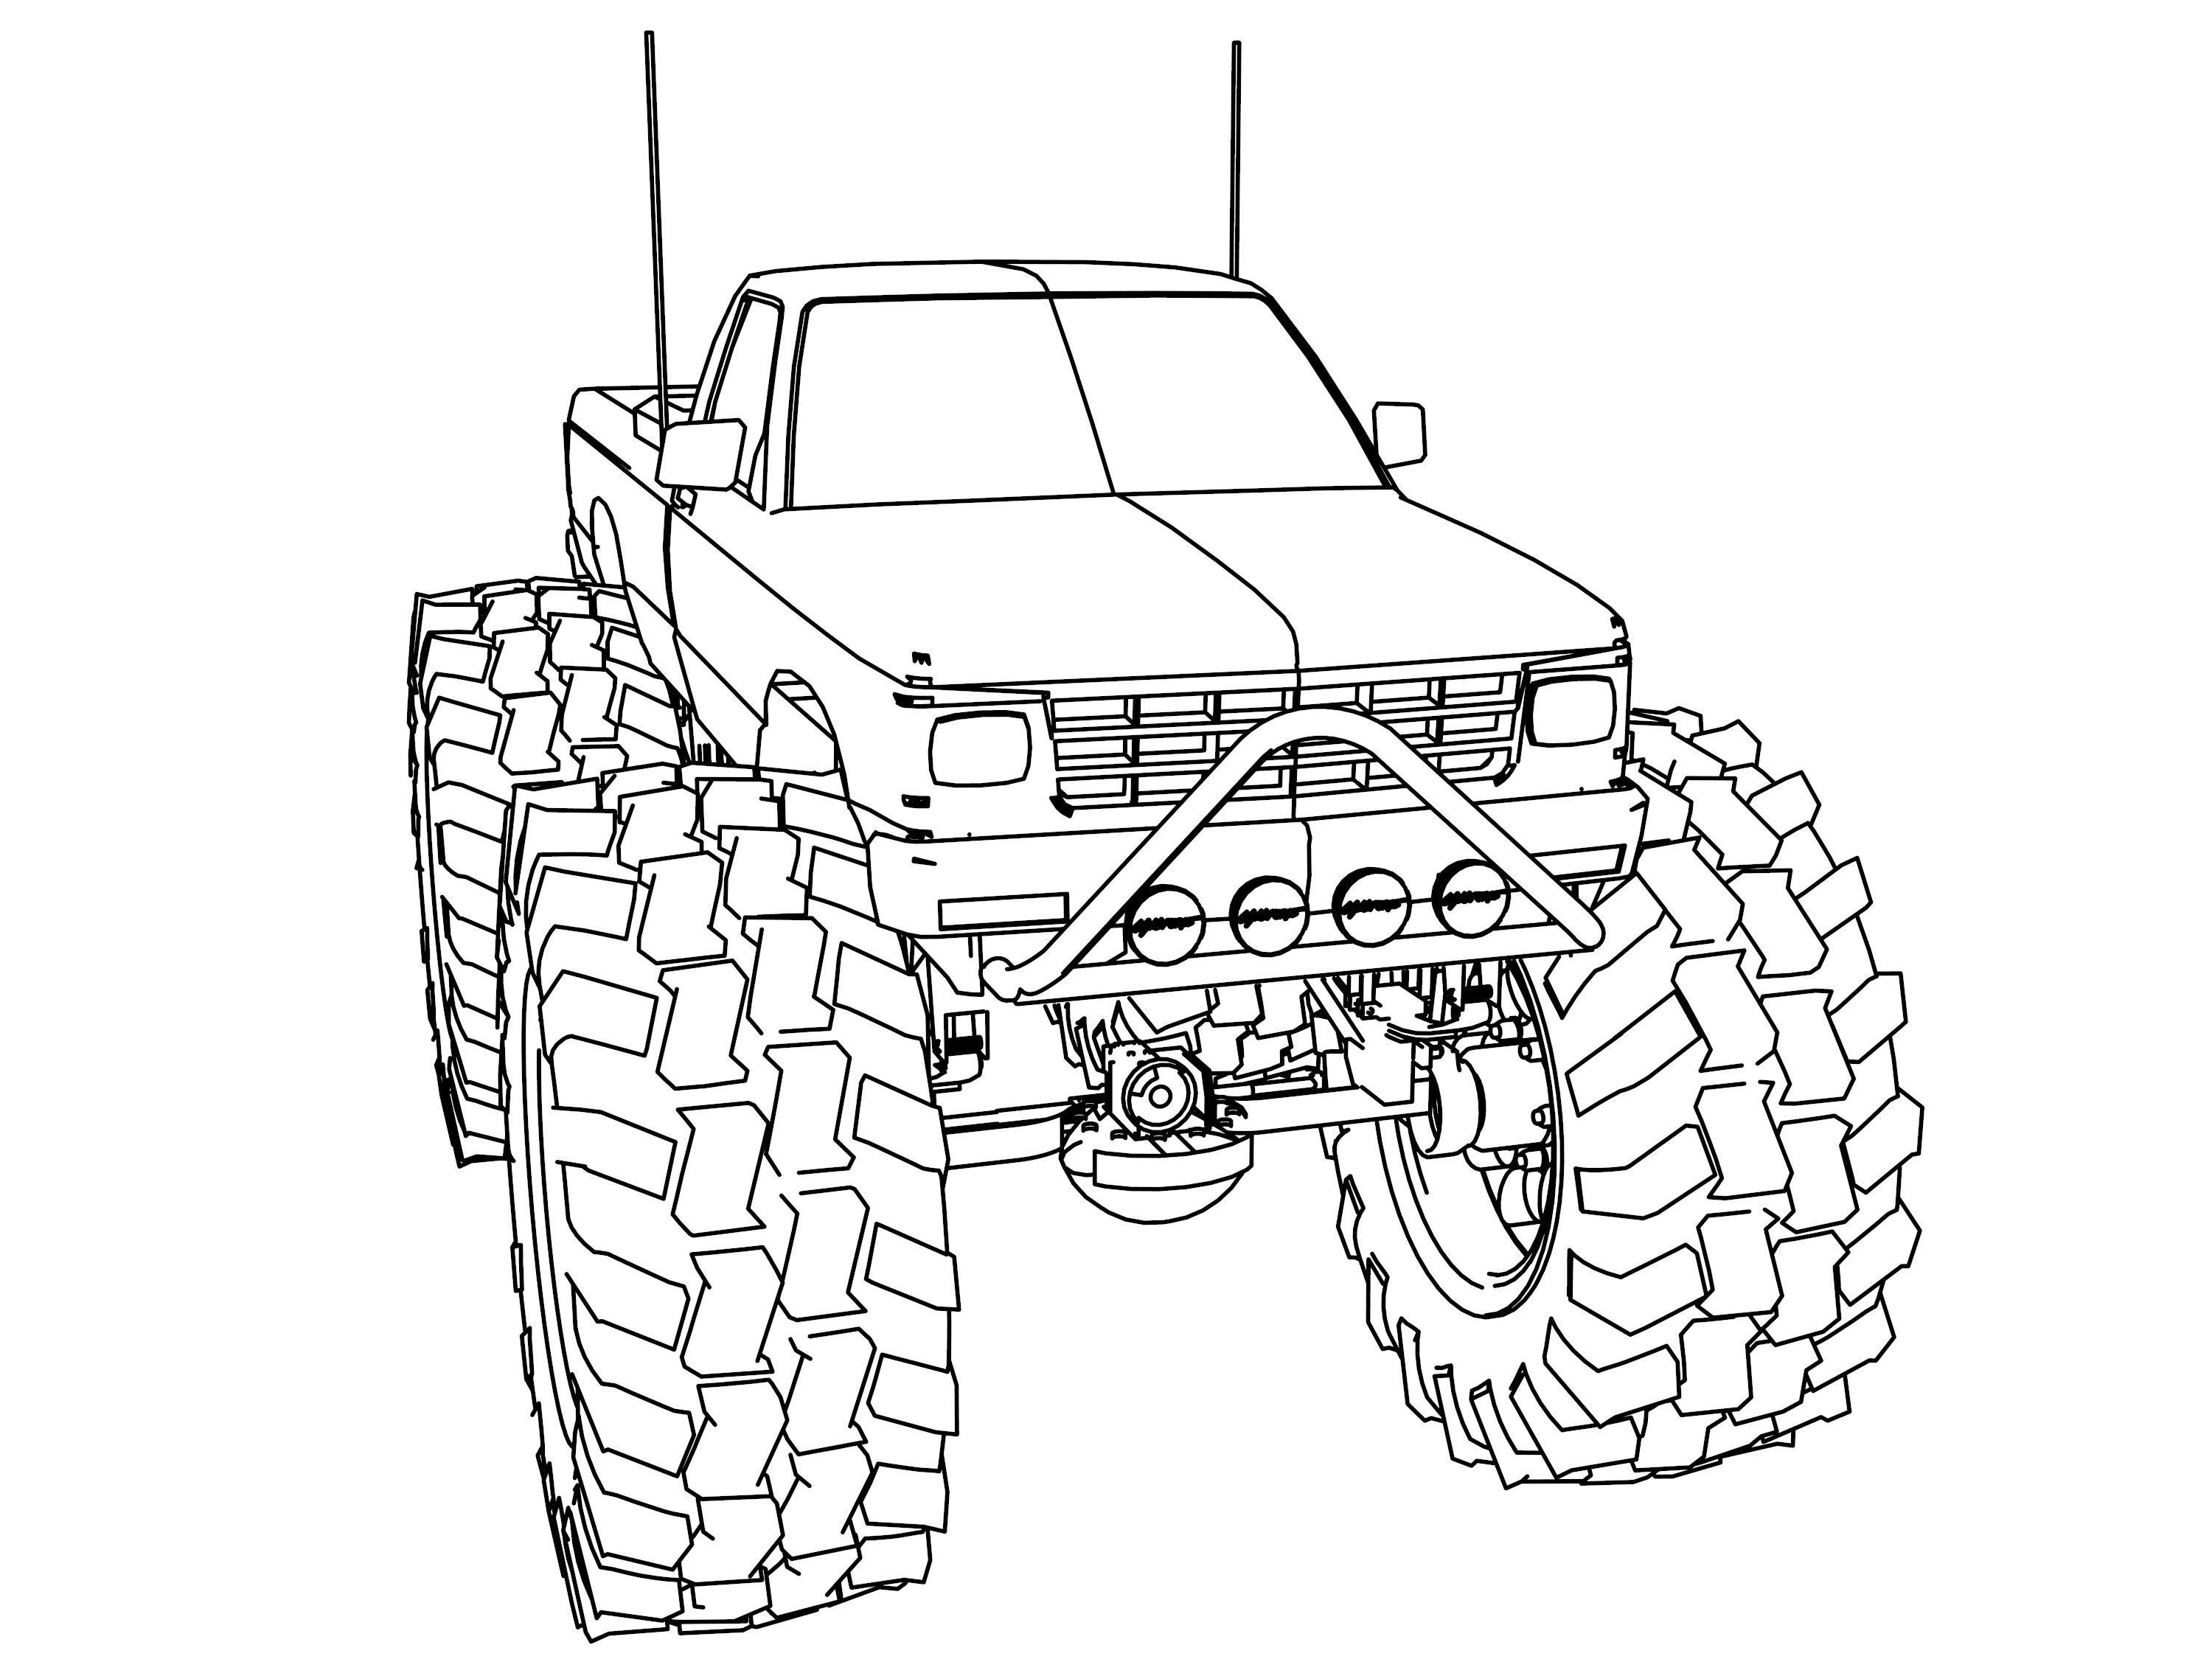 redline coloring pages | Car Front View Drawing at GetDrawings.com | Free for ...